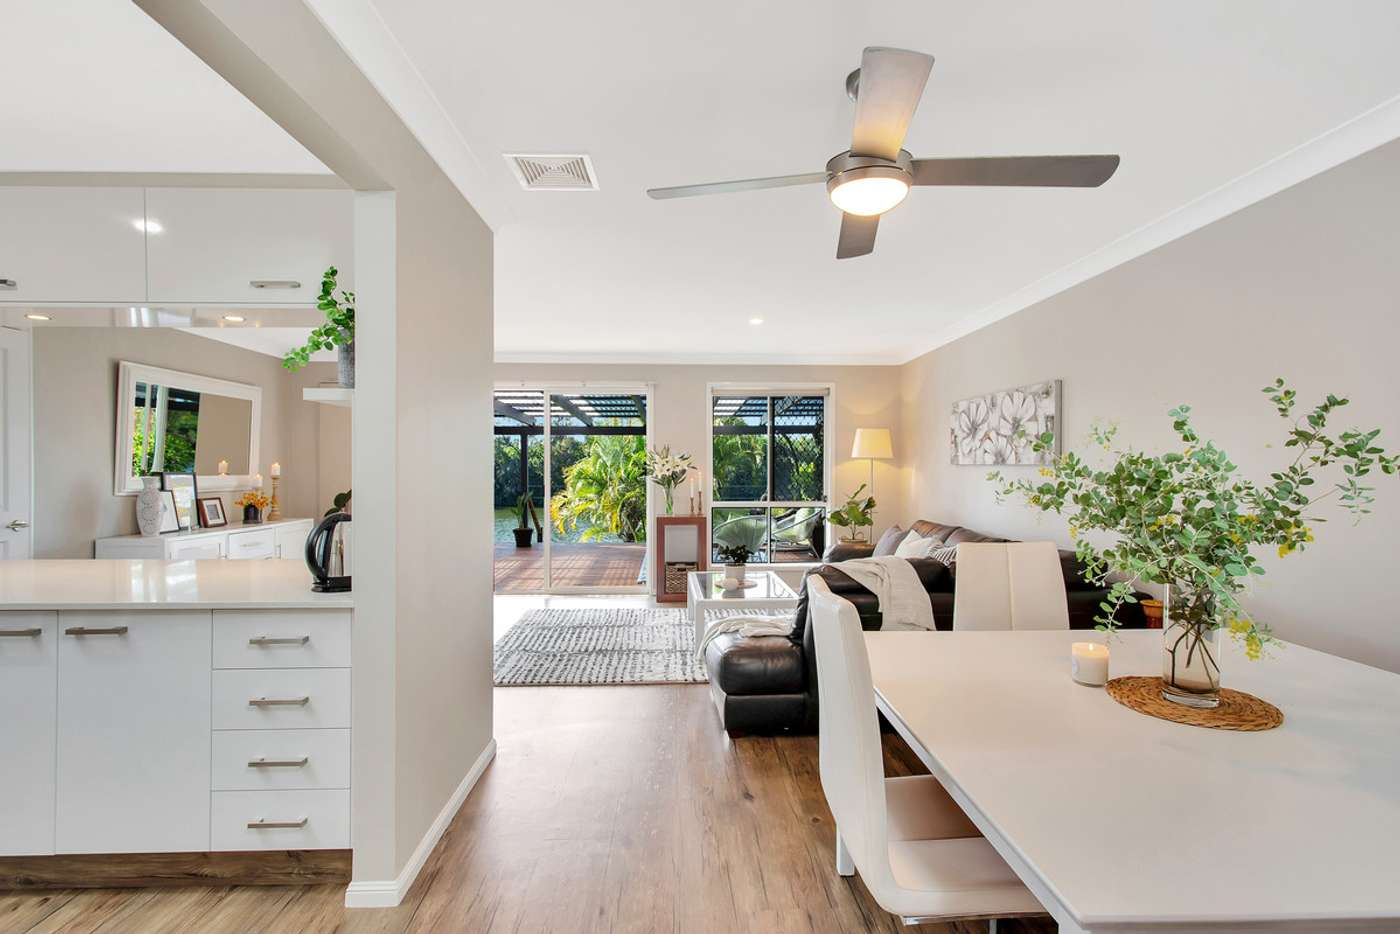 Main view of Homely house listing, 22 Emerton Crescent, Robina QLD 4226